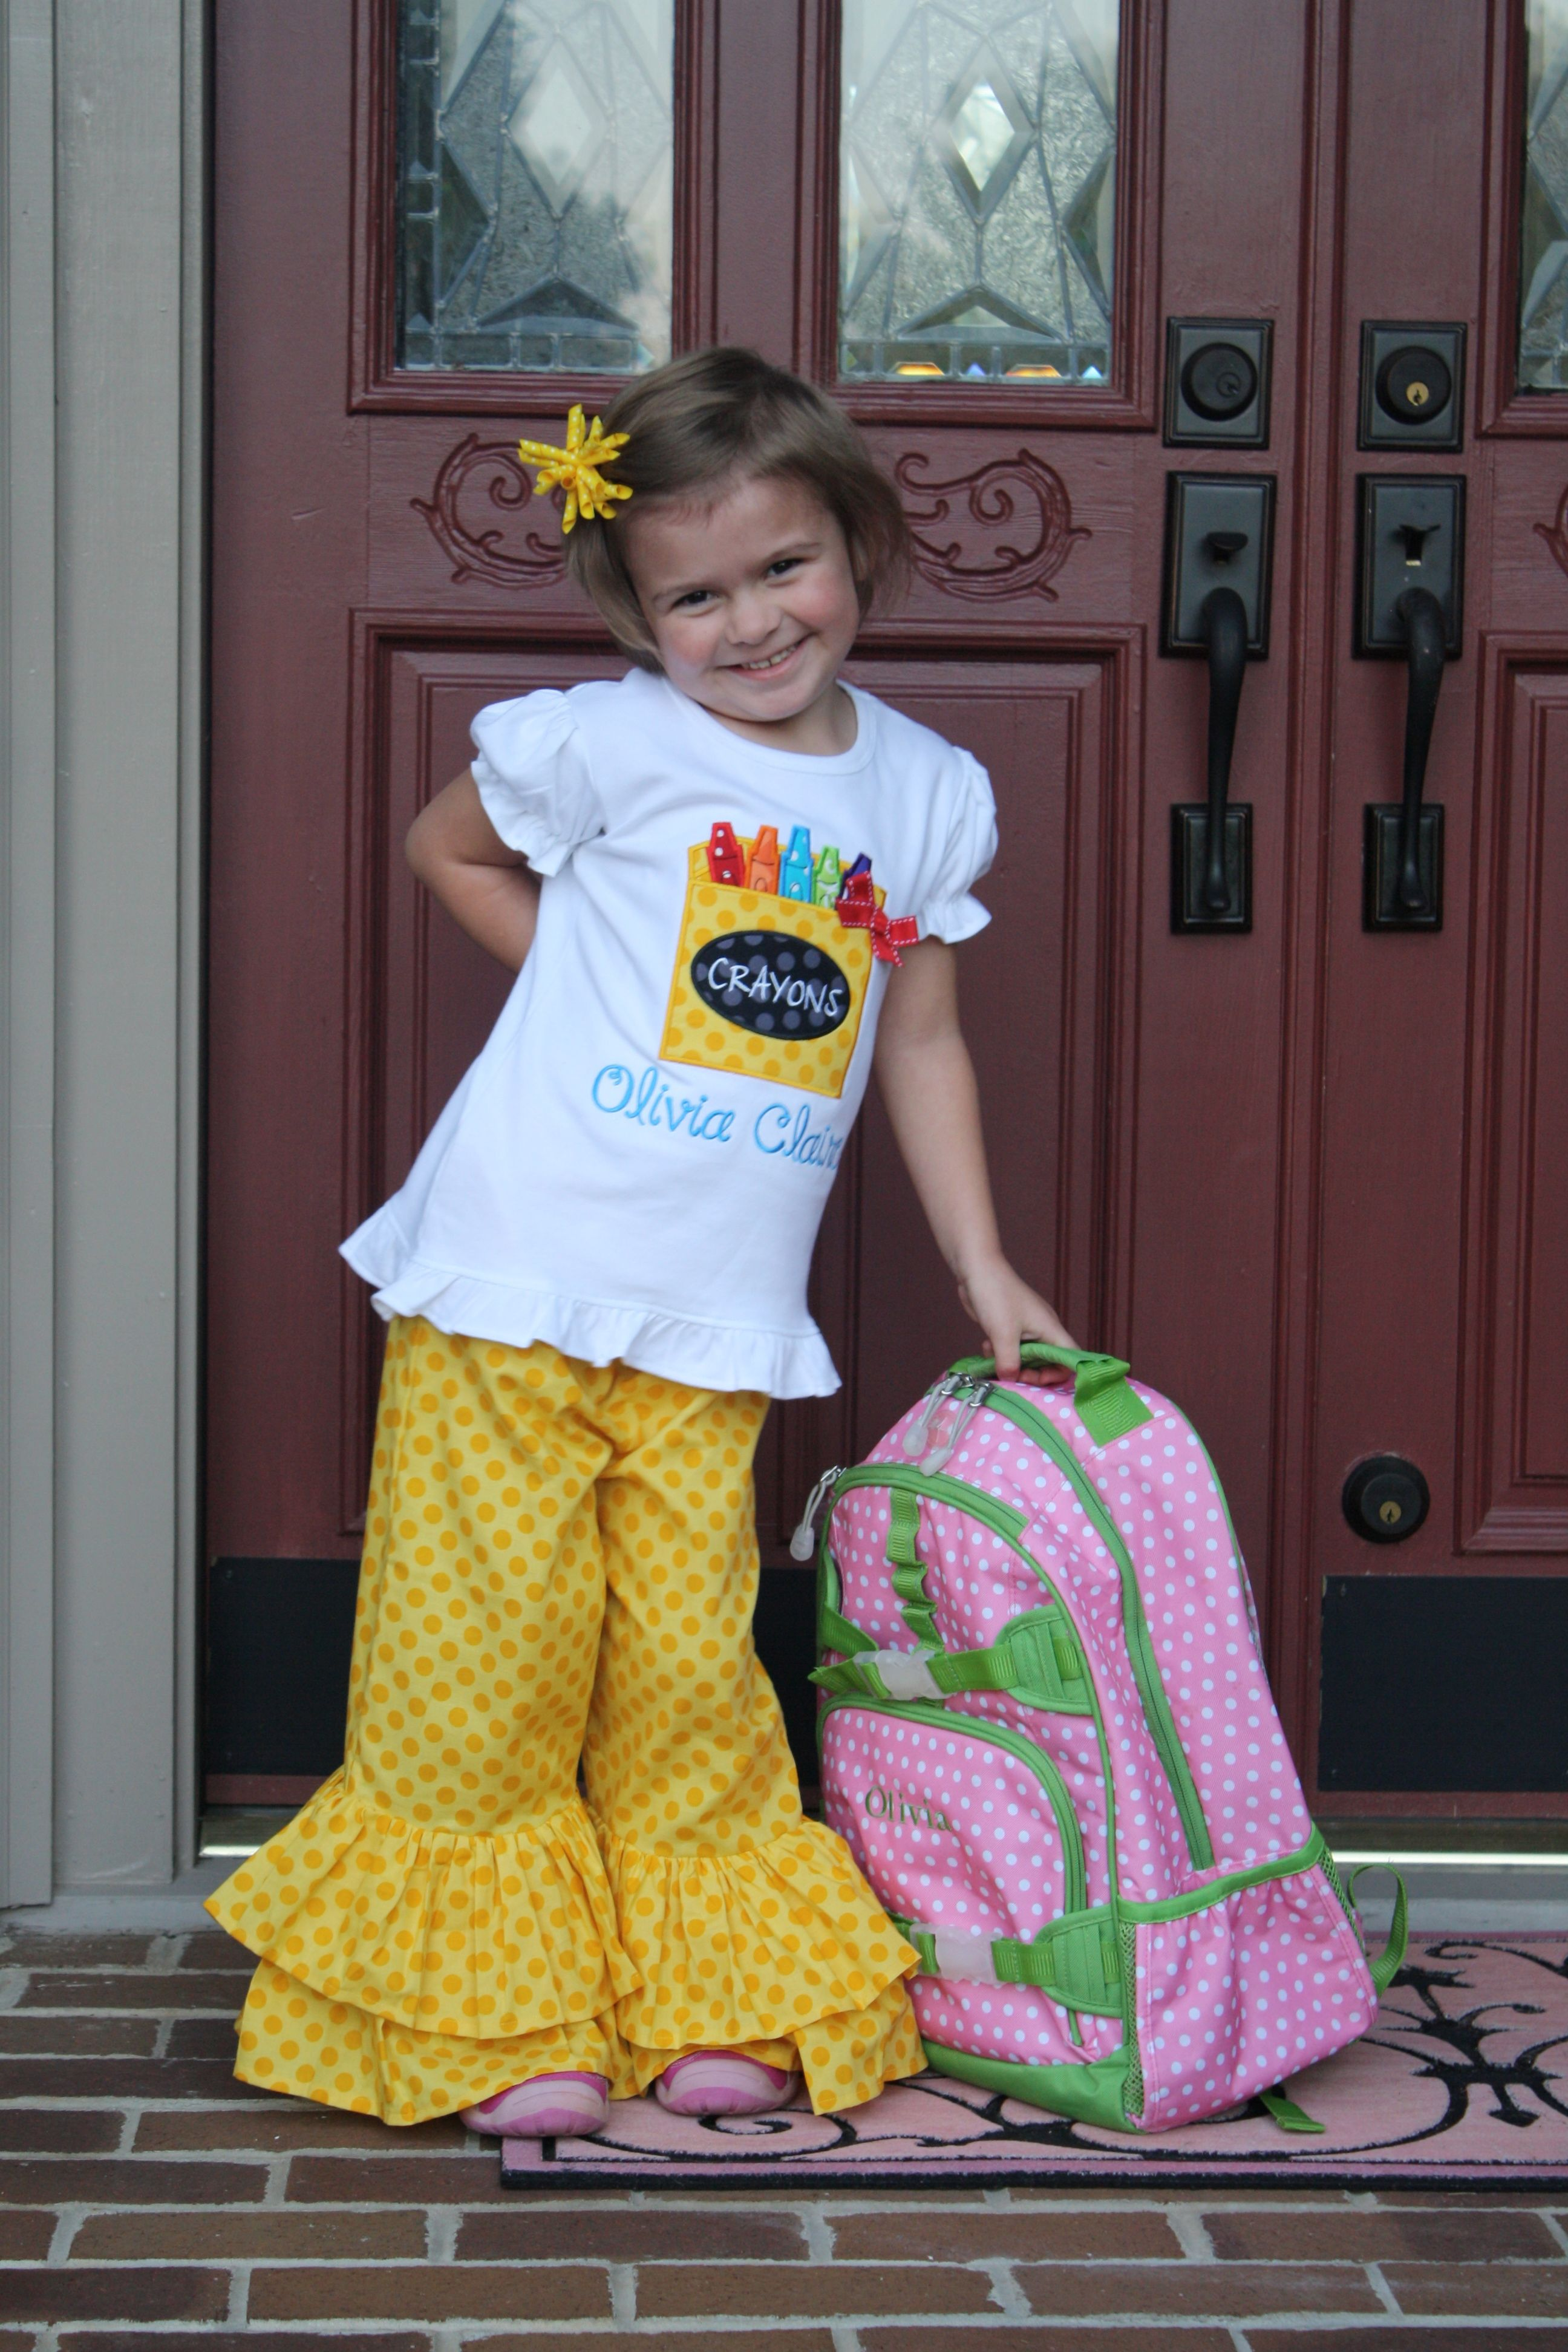 40522e7363fdbd4eb99ab01a0dee7e86 - First Day Of Kindergarten Outfit